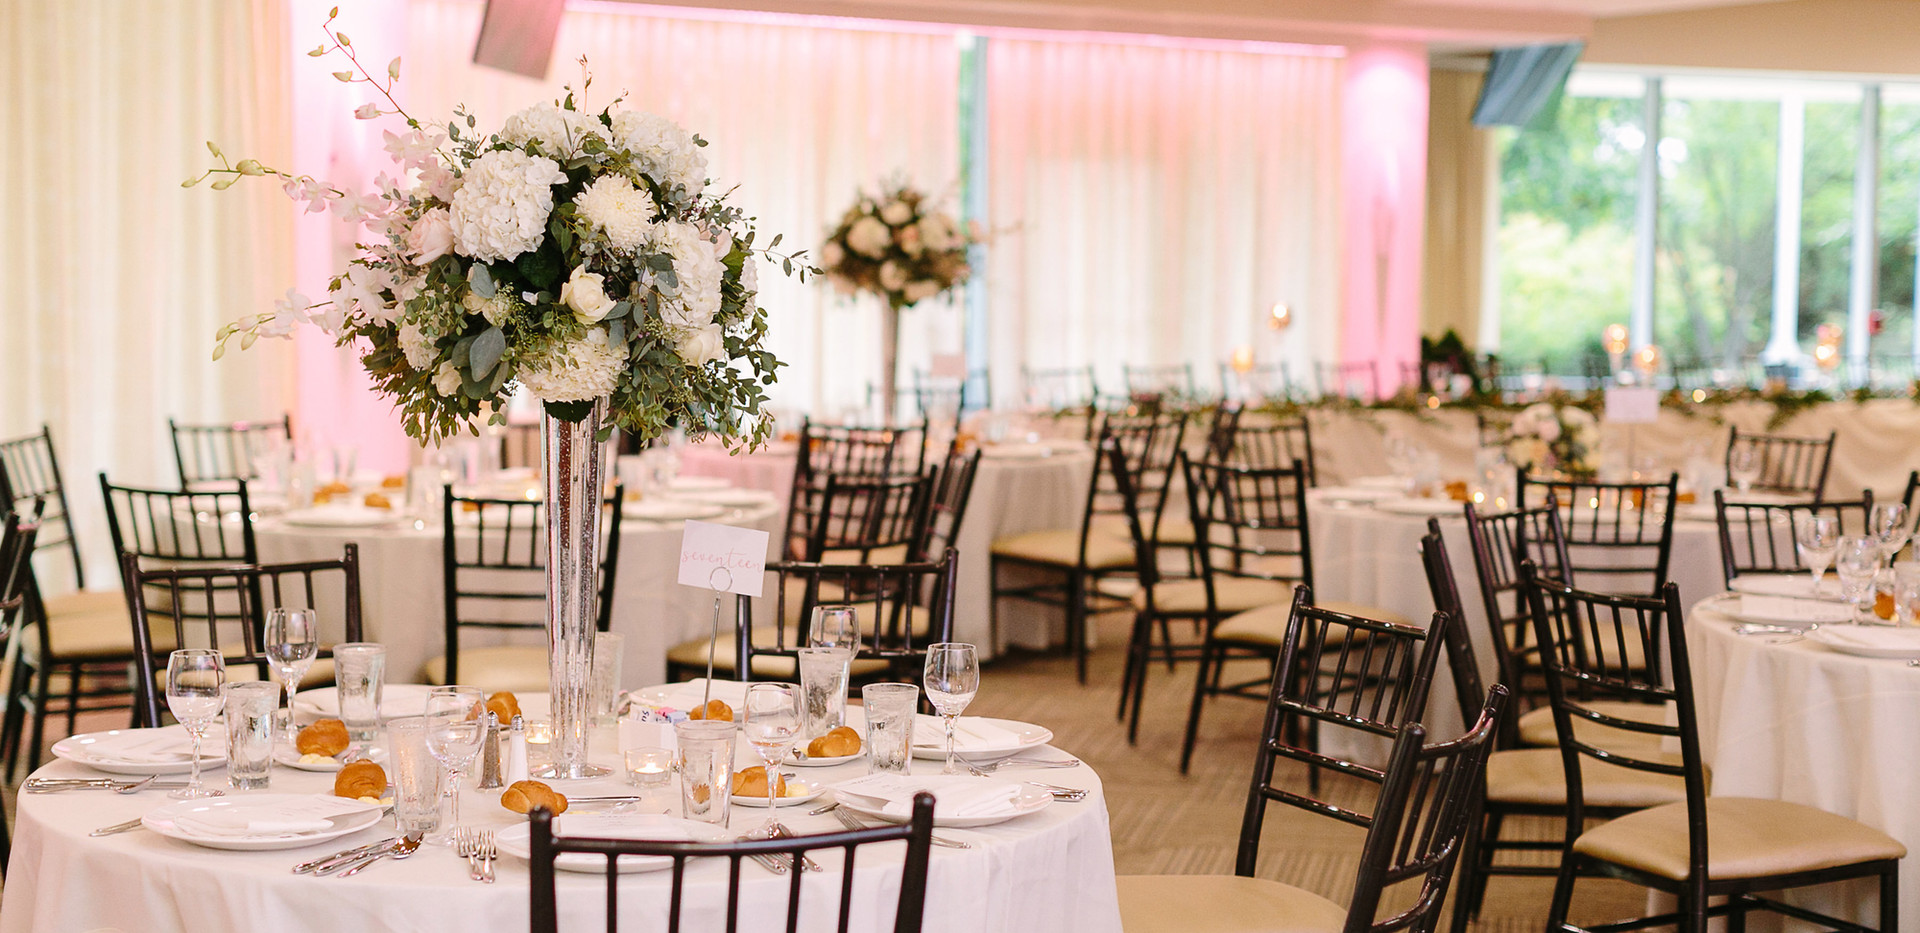 Wedding reception in the Terrace Room